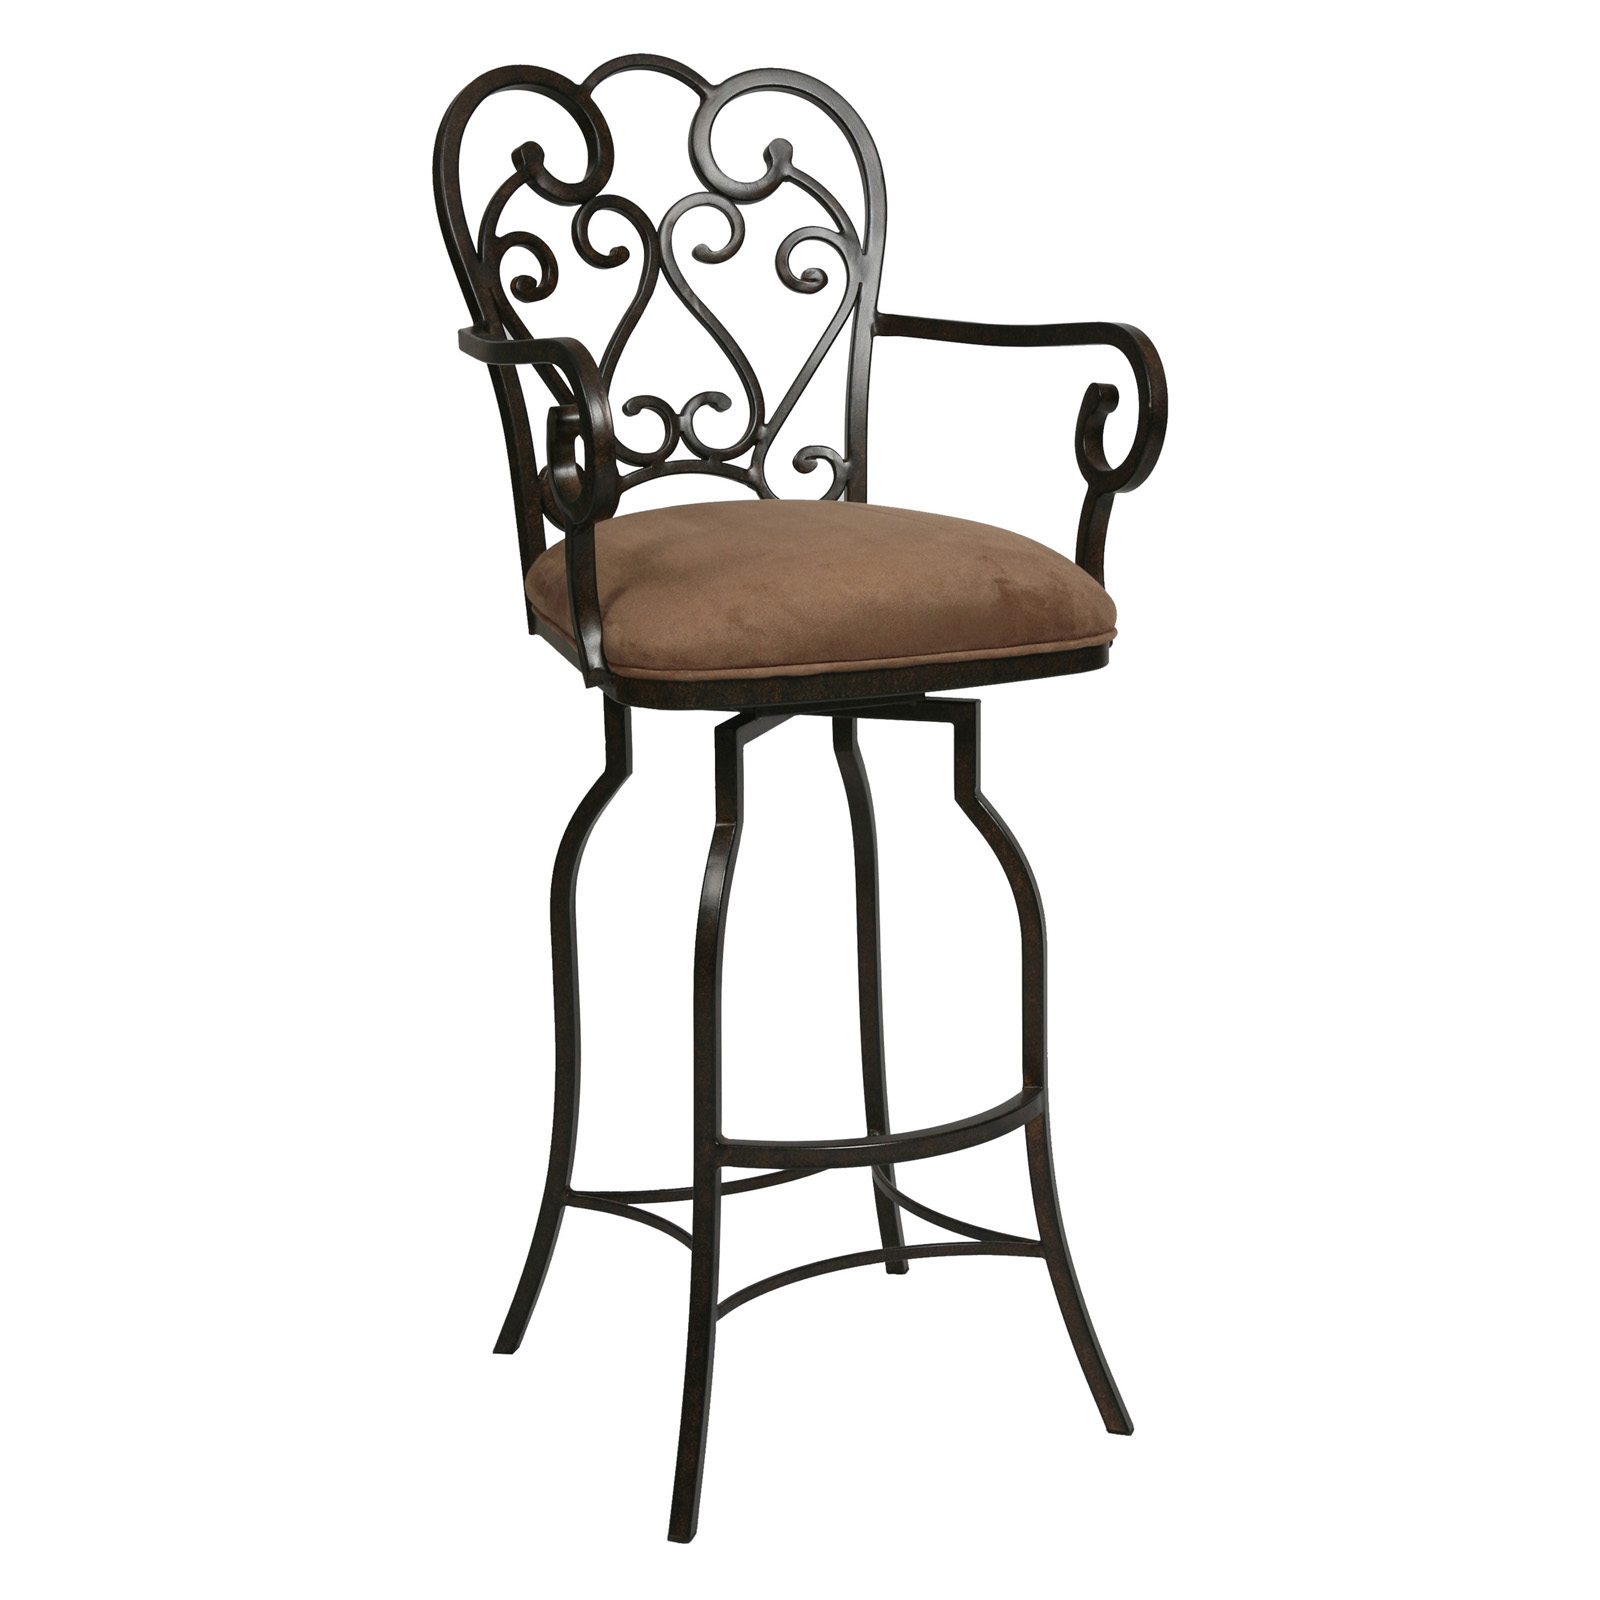 tall patio chairs with arms swing chair kirkland impacterra 34 in magnolia swivel extra bar stool